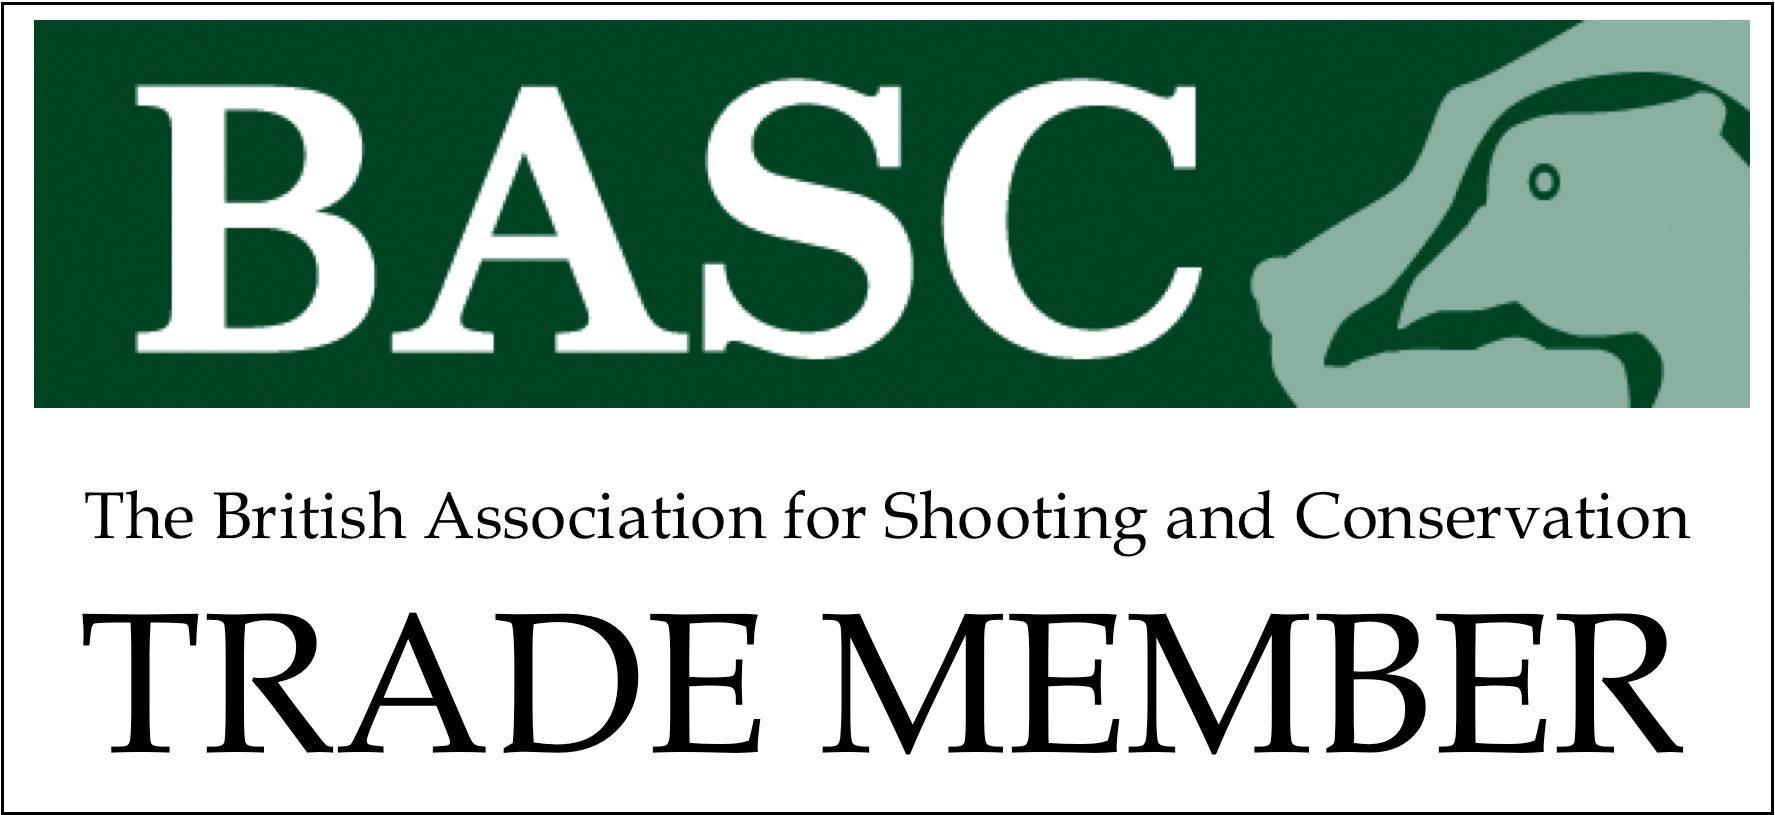 The British Association for Shooting and Conservation